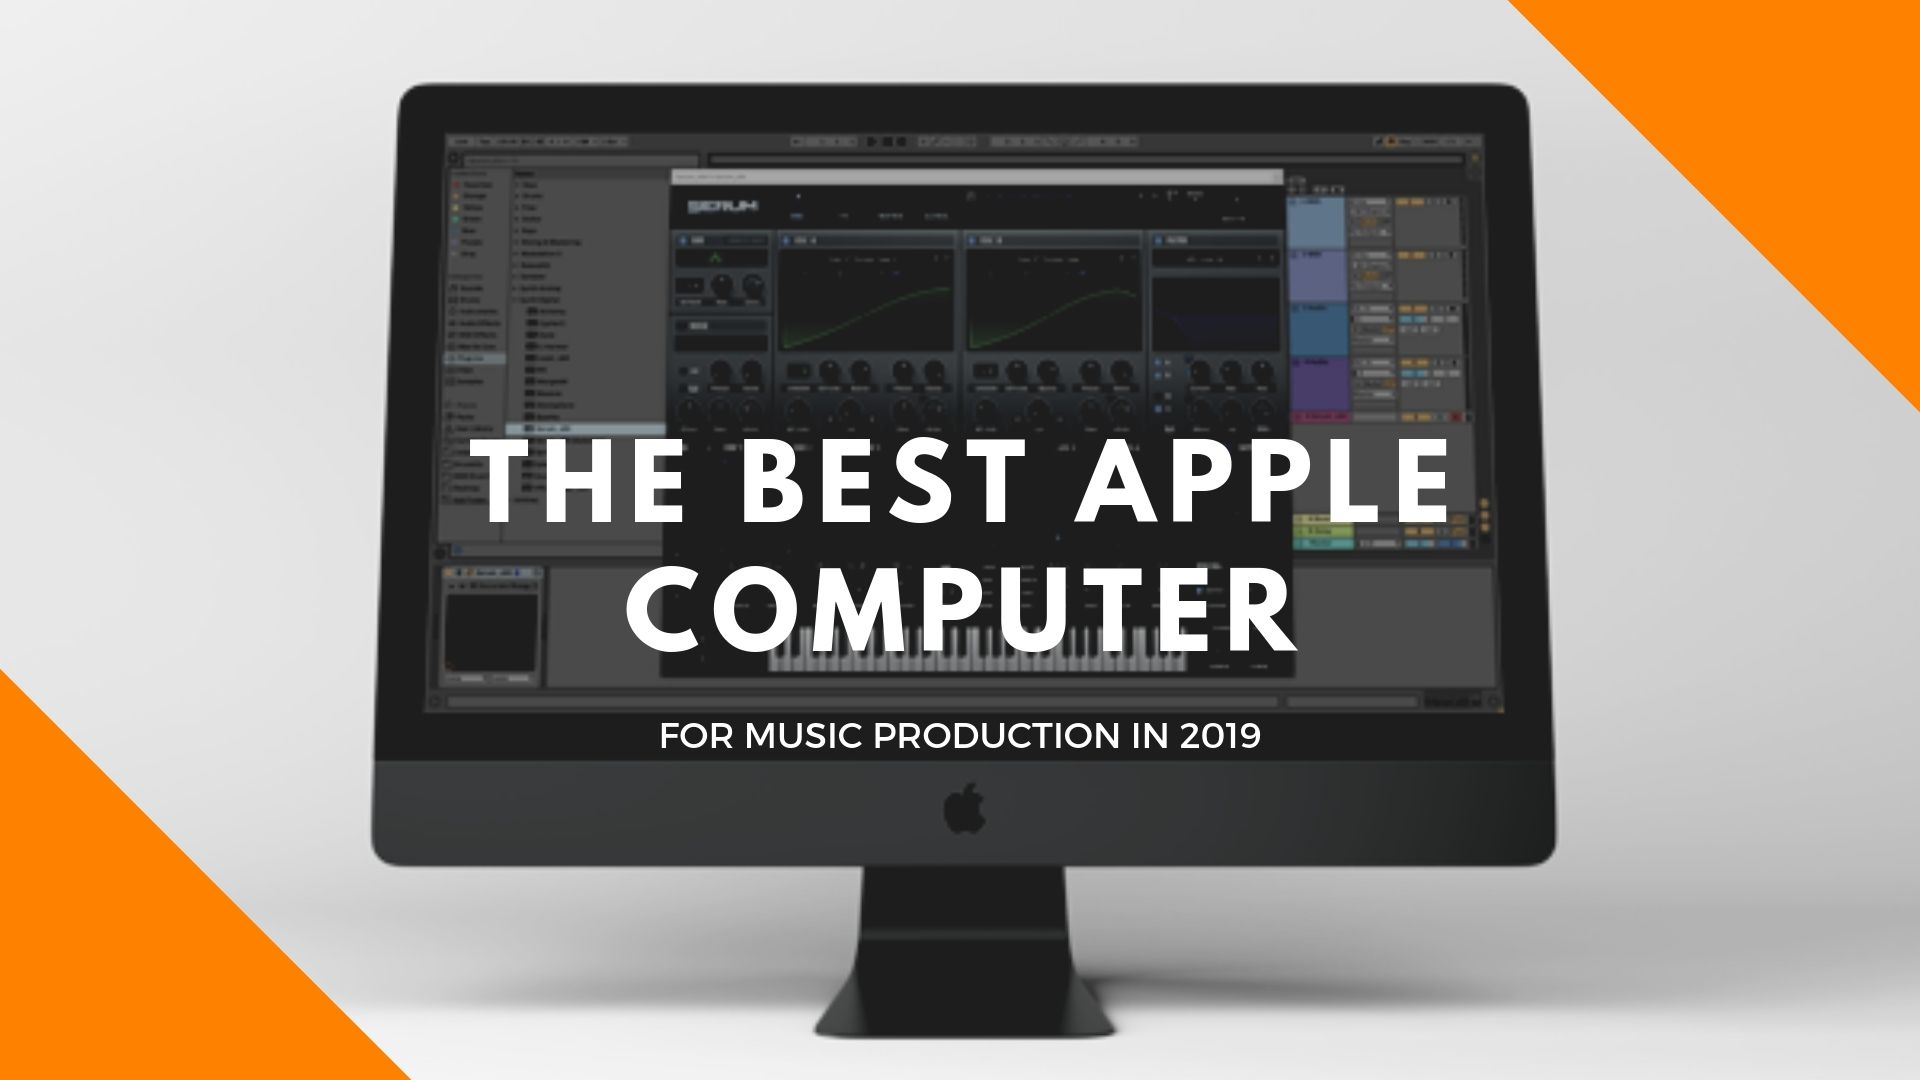 Best Macbook For Music Production 2019 The Best Apple Computer For Music Production In 2019   The Music